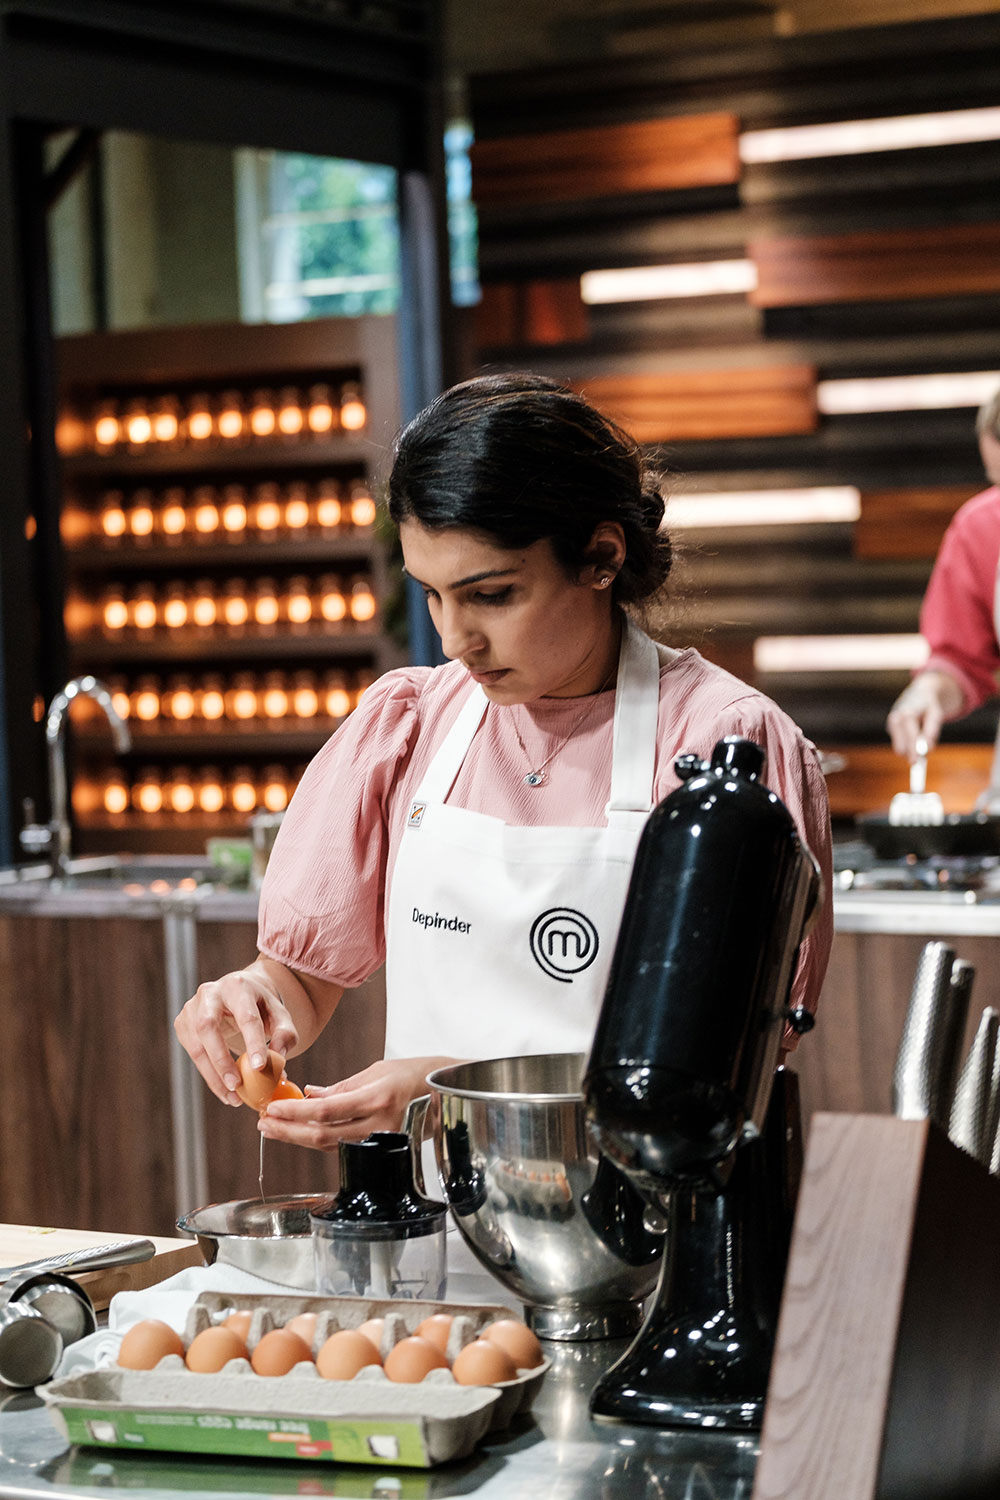 Being methodical and paying attention to detail have helped Depinder Chhibber in the MasterChef kitchen.